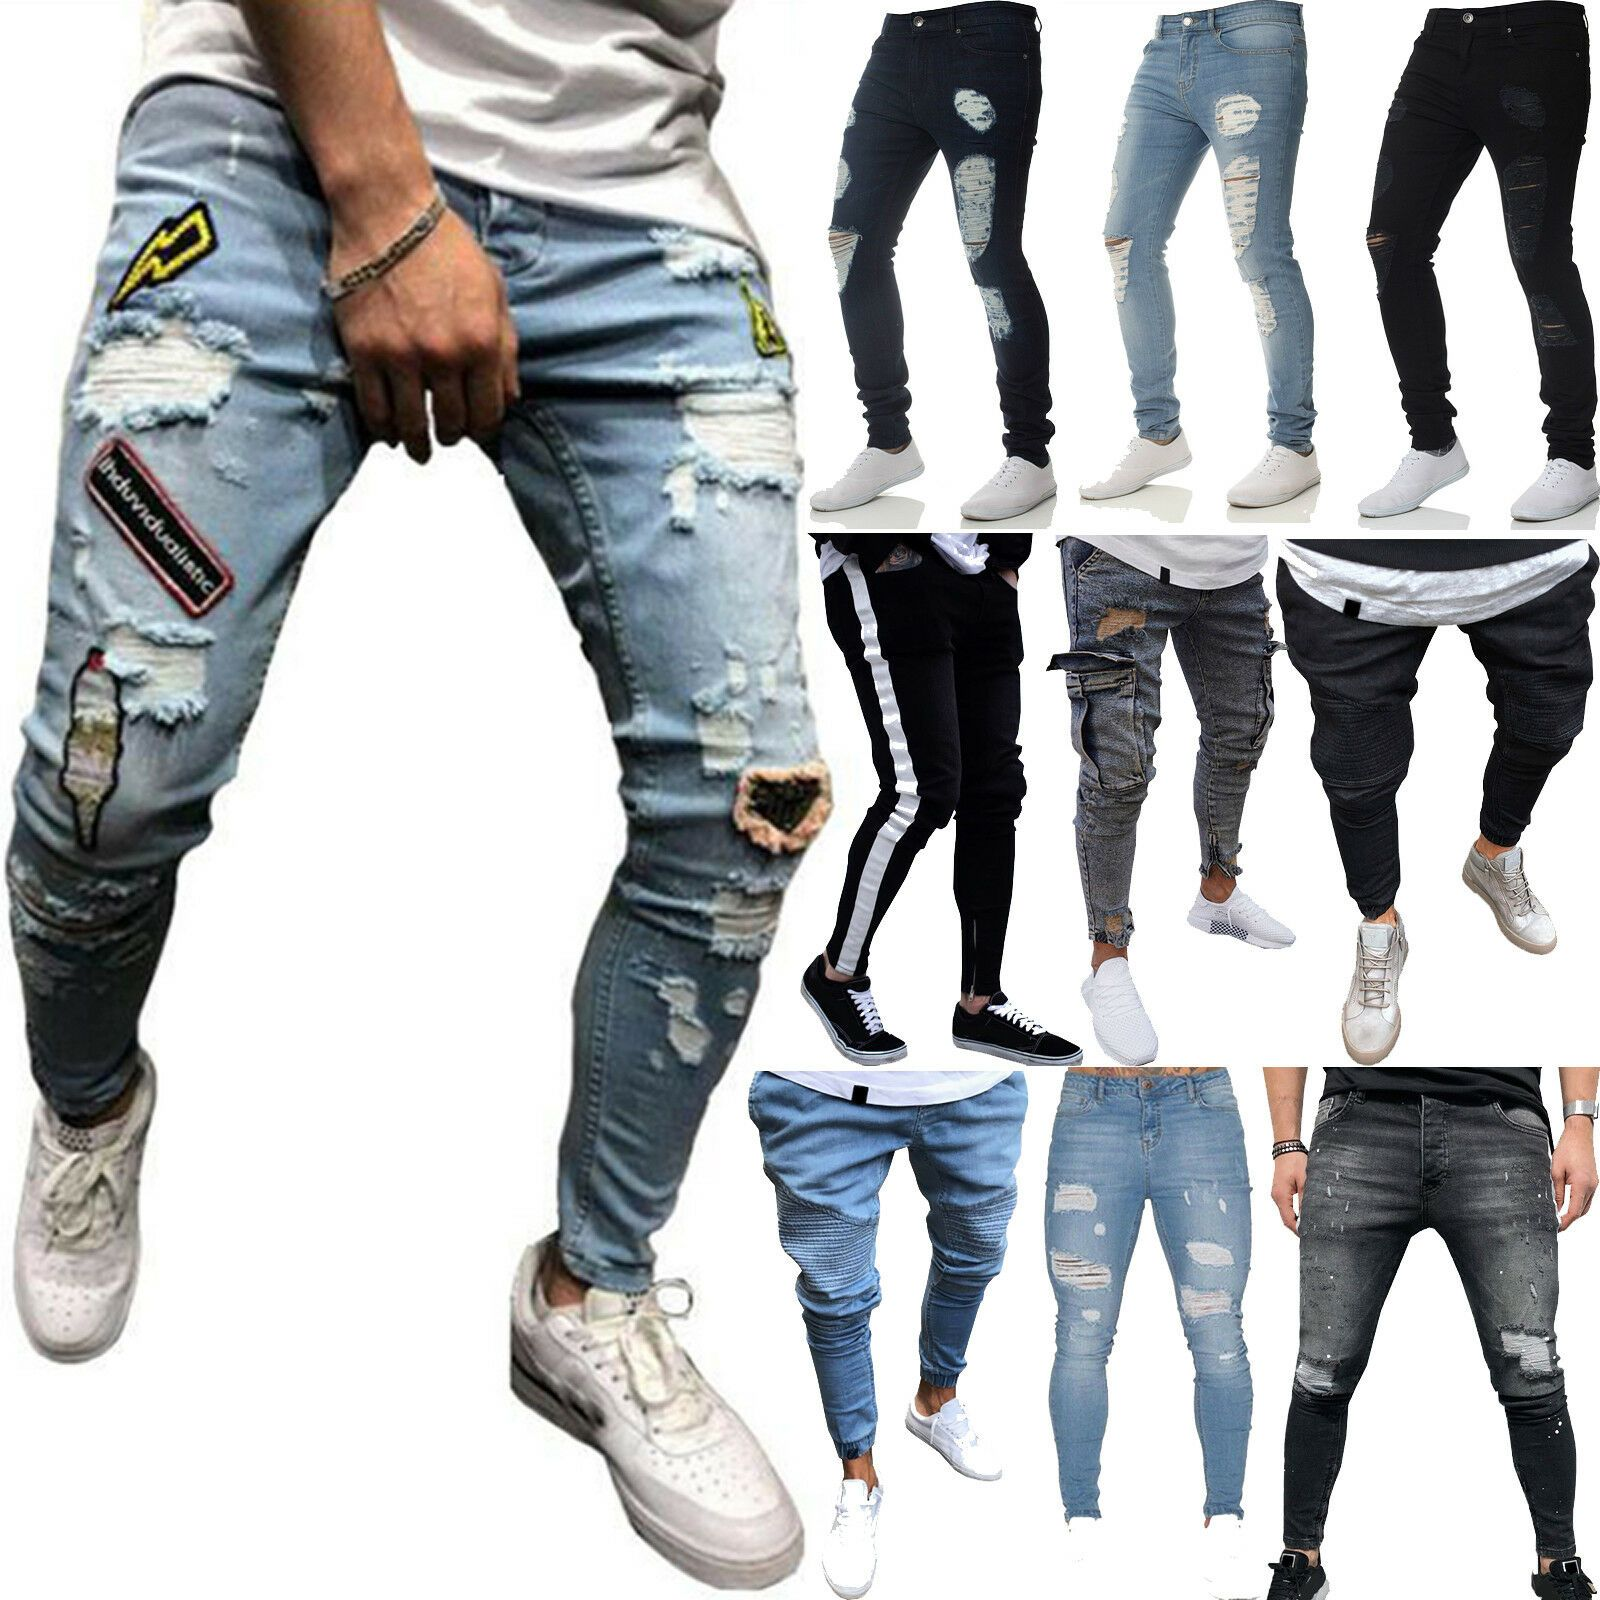 Men Skinny Casual Joggers Denim Jeans Slim Fit Jogging Long Pants Biker Trousers